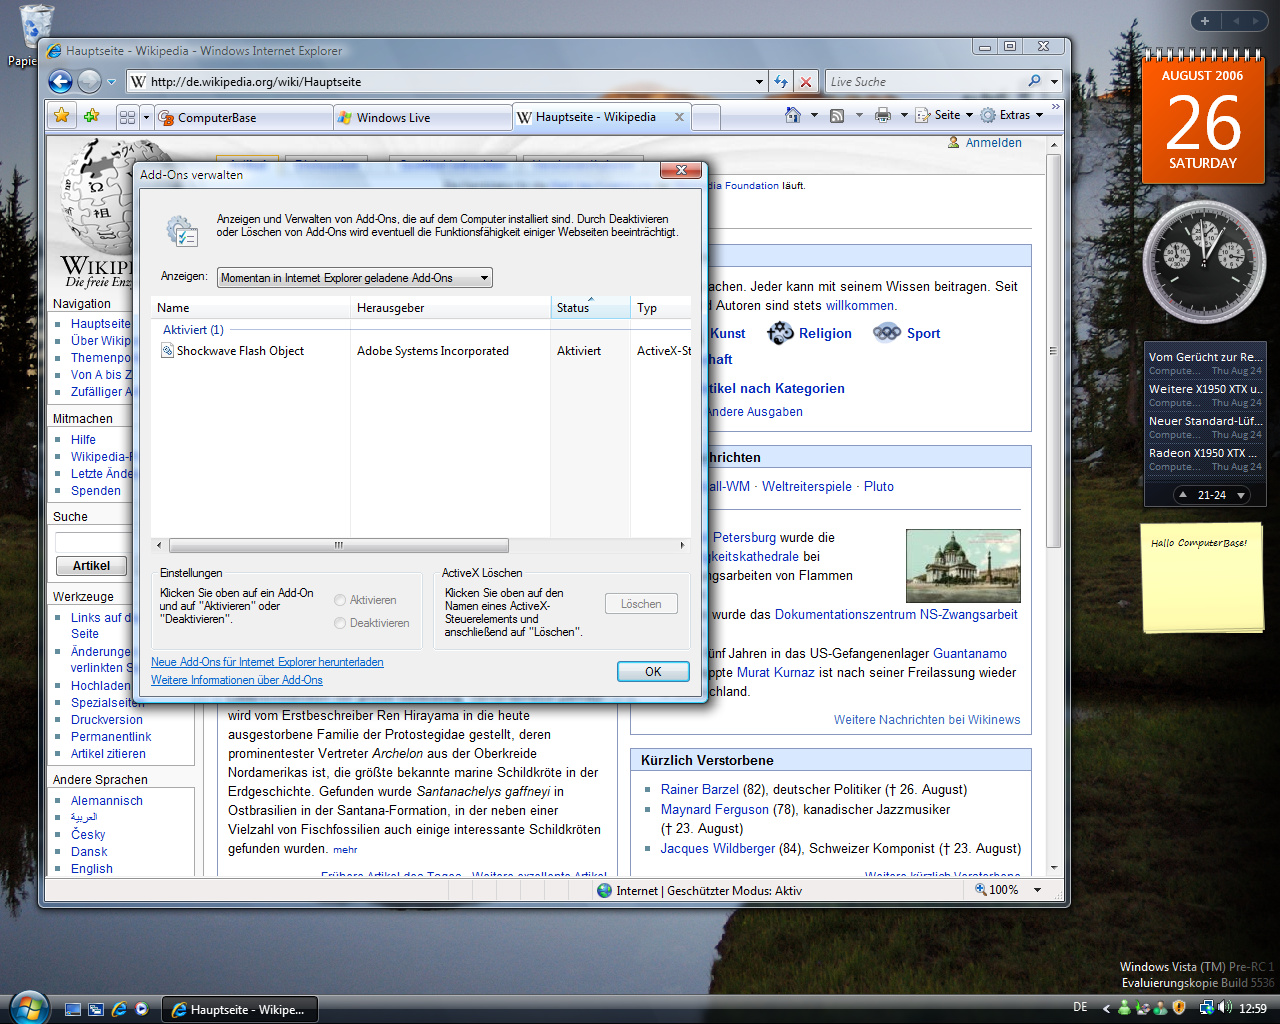 Windows Vista Build 5536 - Internet Explorer 7.0 Add-Ons-Manager